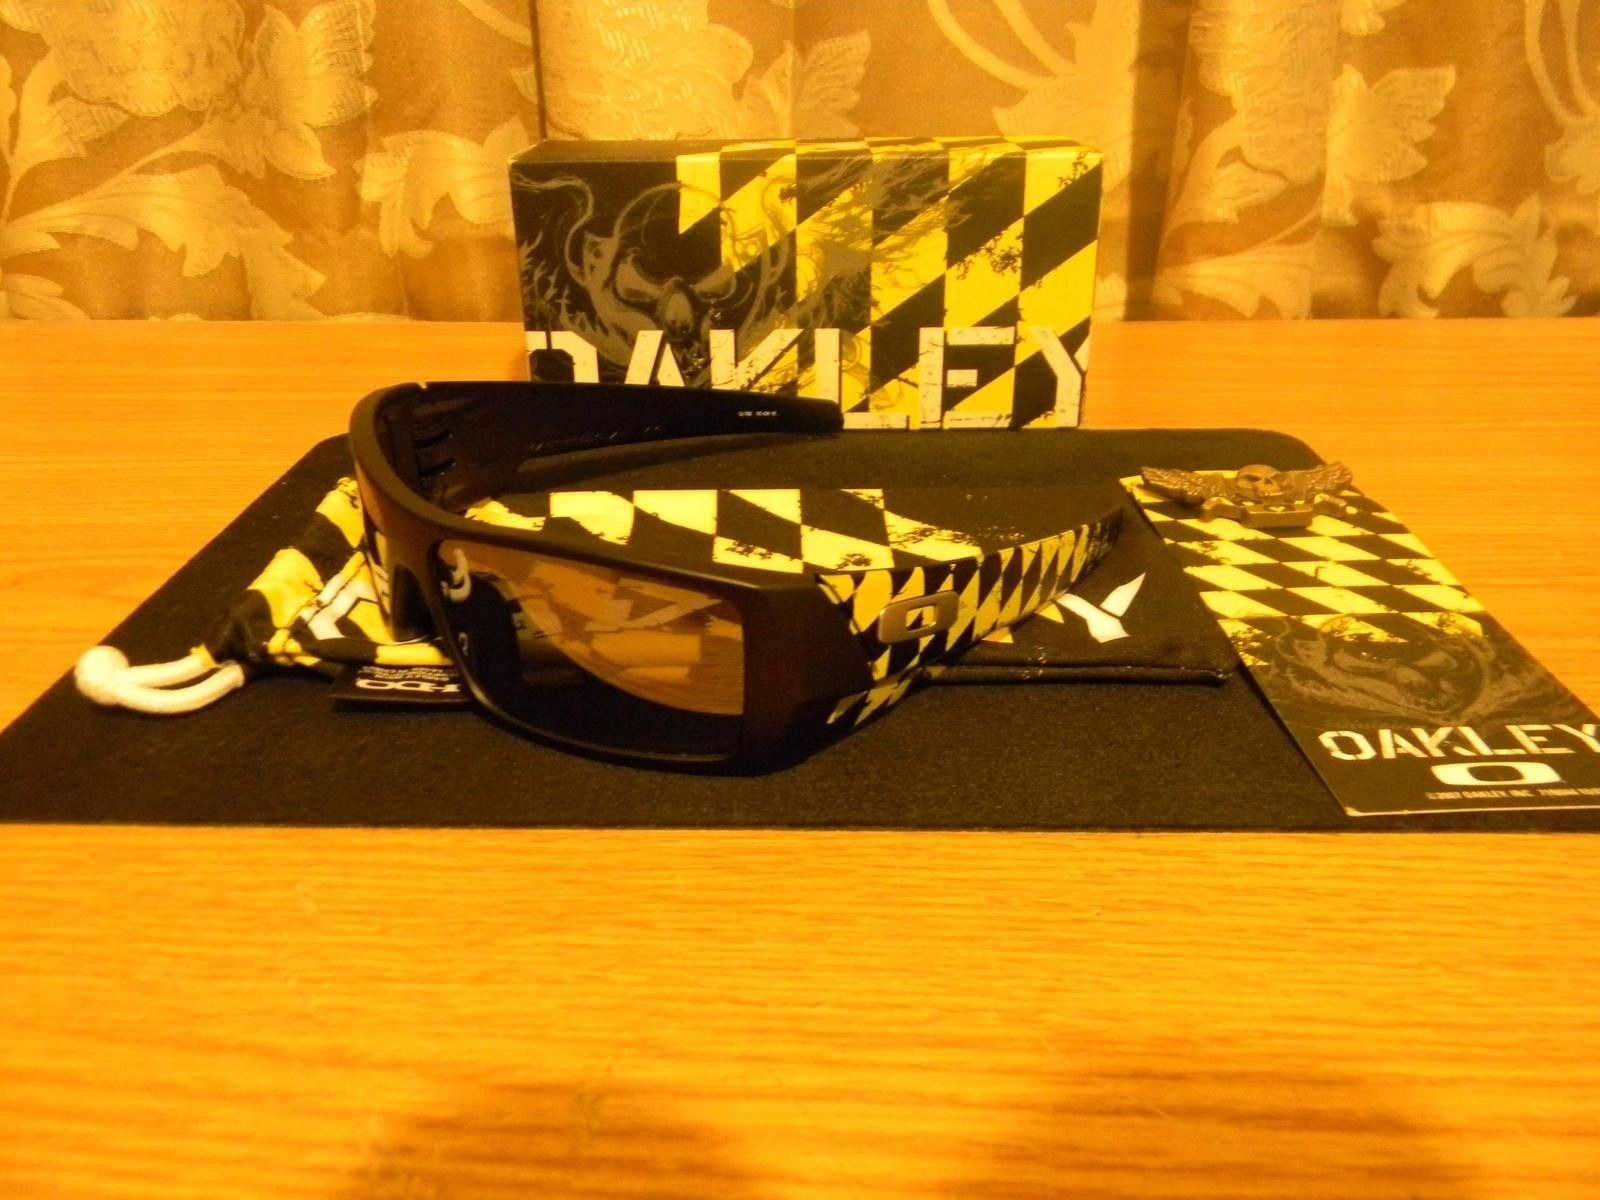 oakley gascan orange 0w66  Oakley Gascan Flying Tiger Black Version And JPM With Art On The Side